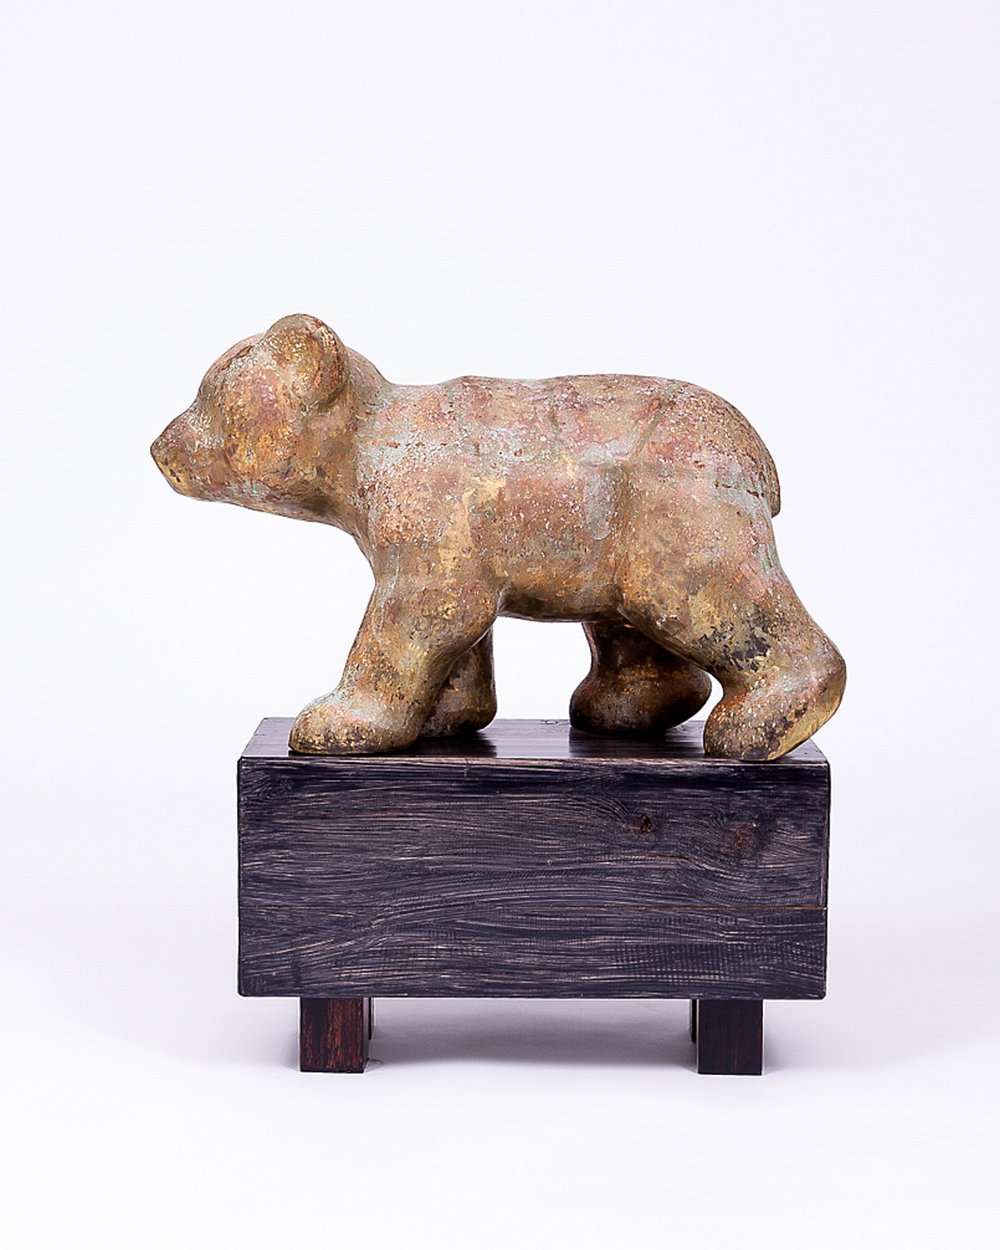 Ours qui marche/2012/40 x 70cm/edition of 12